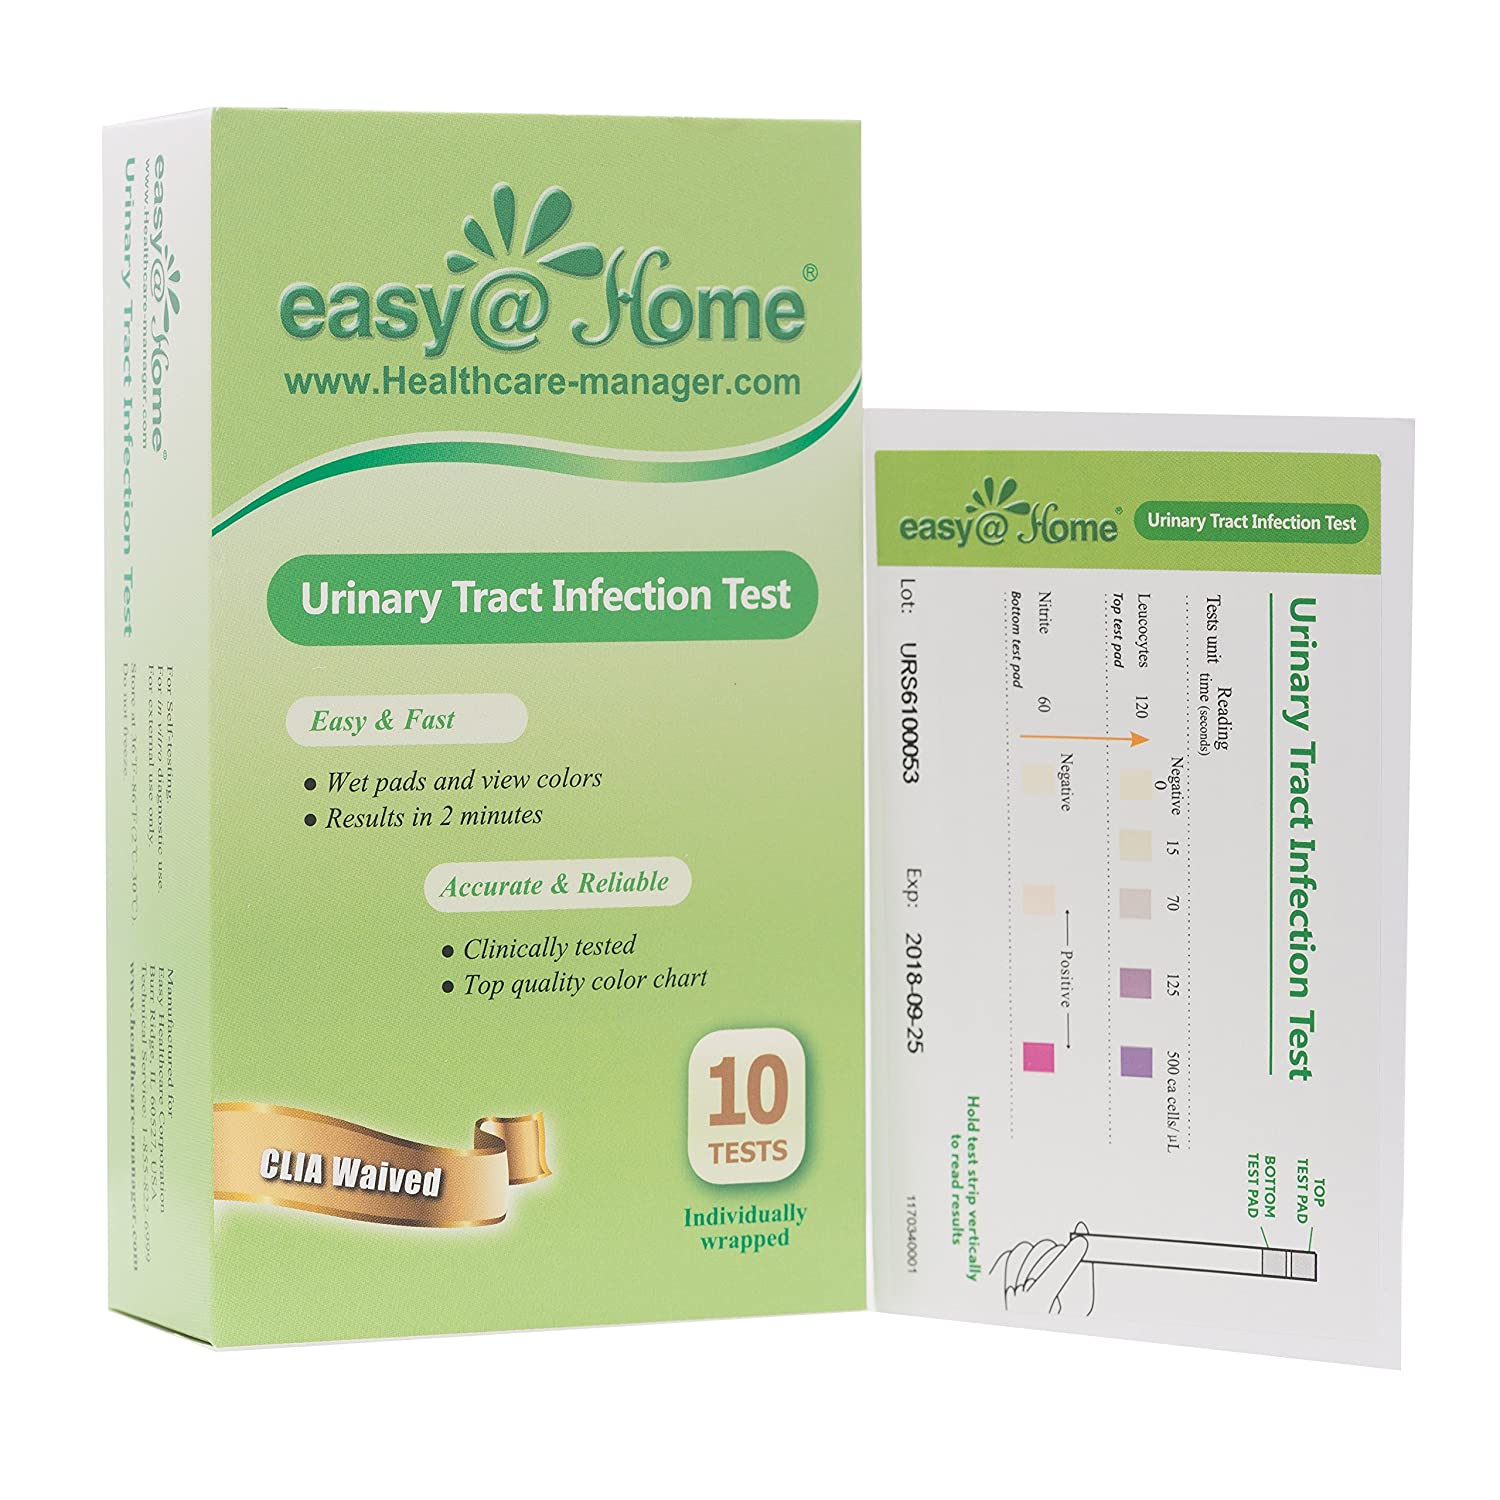 Amazon.com: Easy@Home(UTI-20P) Urinary Tract Infection Test Strips (UTI Test Strips),20 Tests- 10 Individually Packed Tests/Box- FDA Cleared for OTC USE, ...